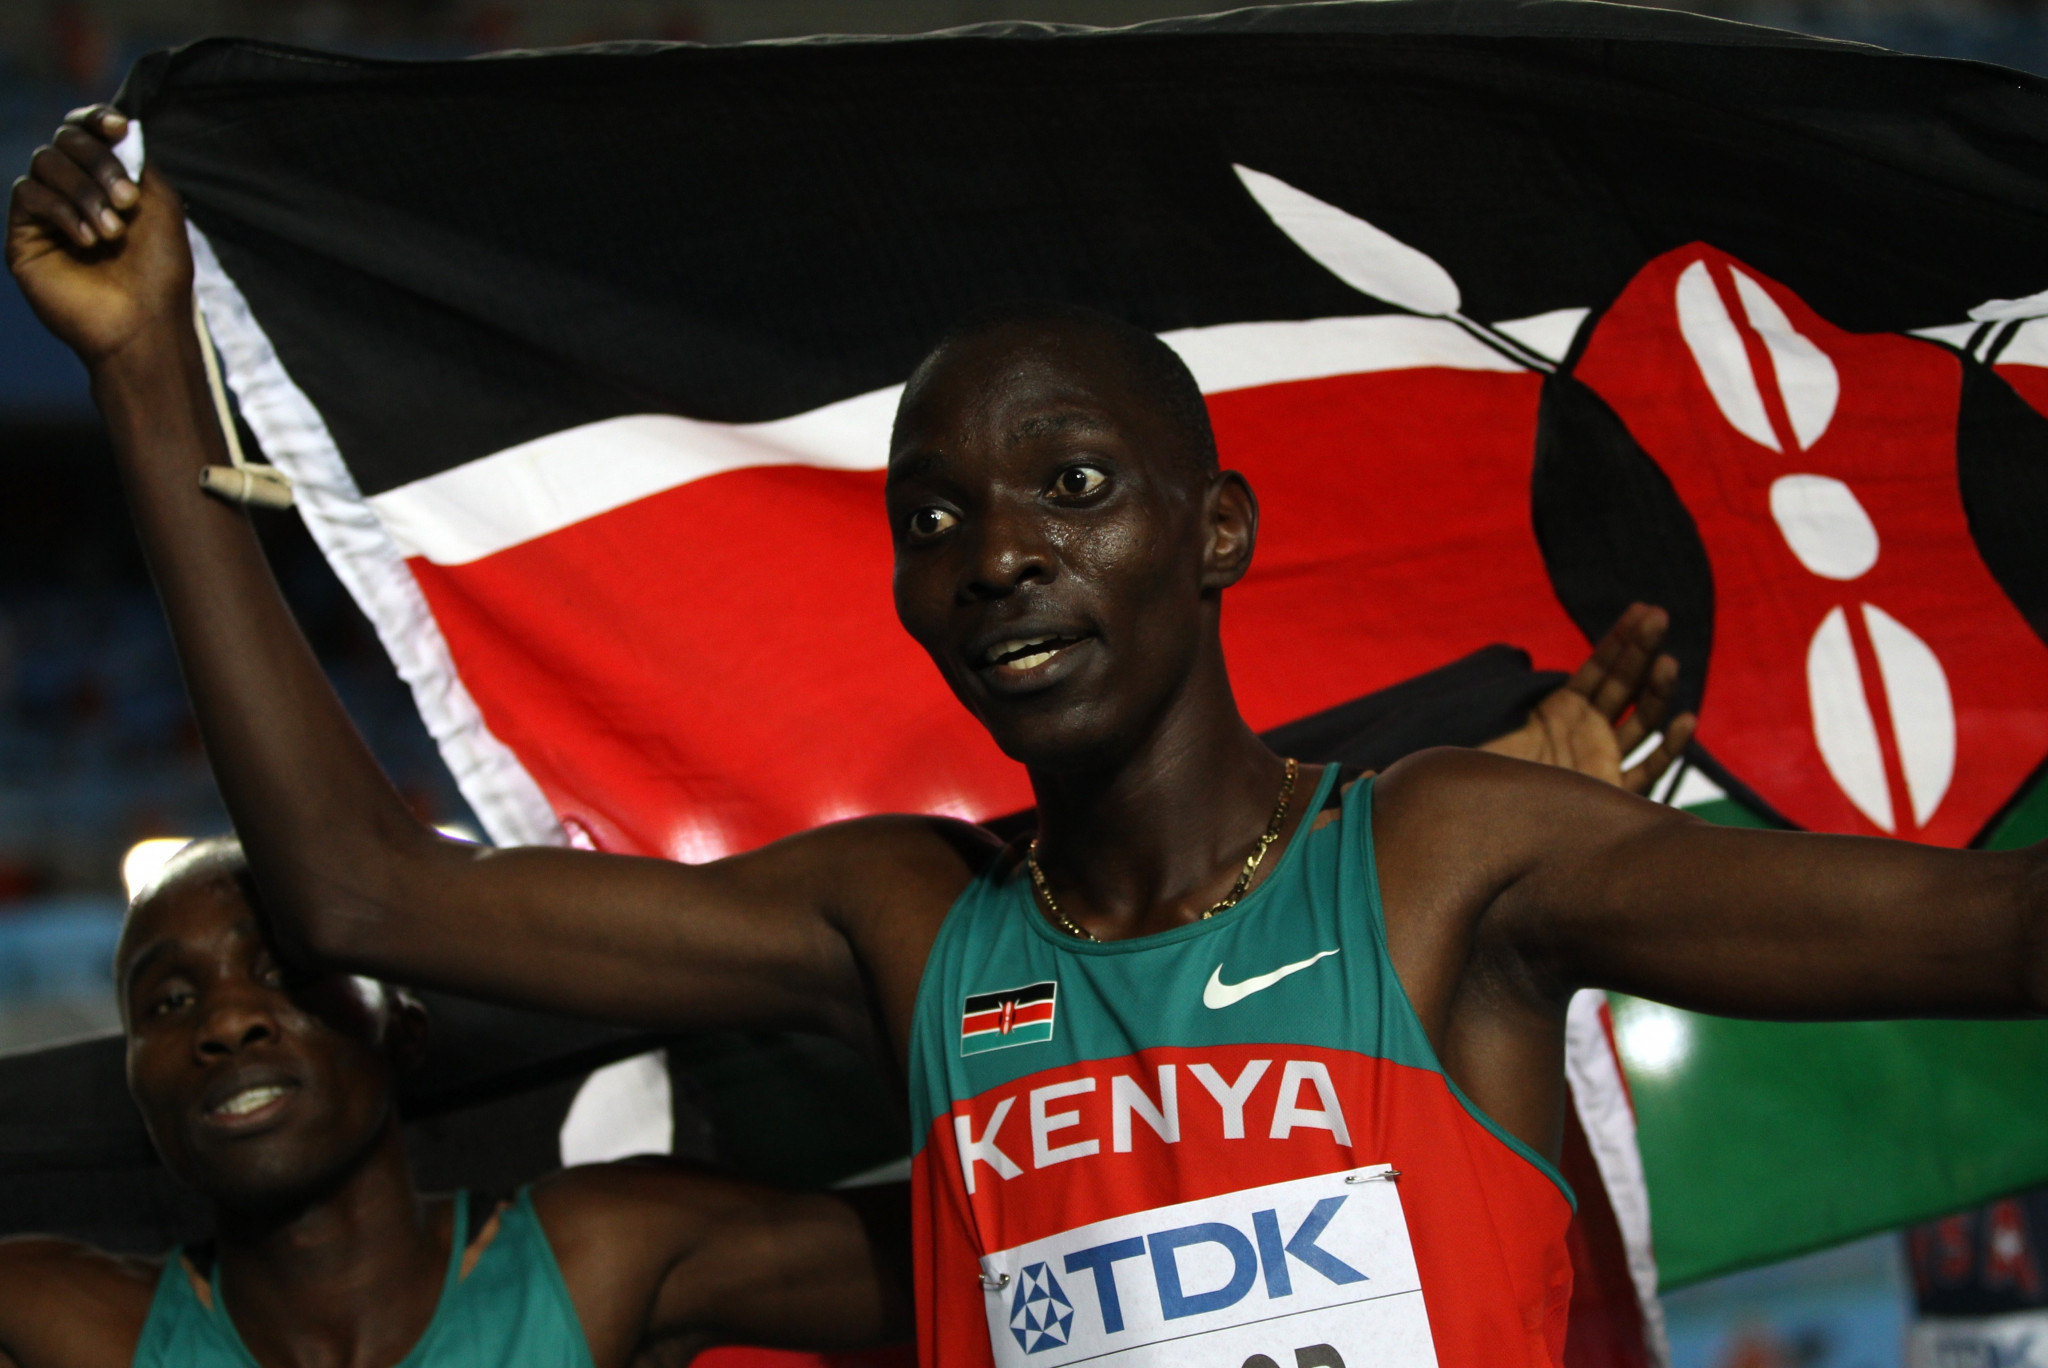 Asbel Kiprop celebrates winning the World Championship title in 2011 ©Getty Images